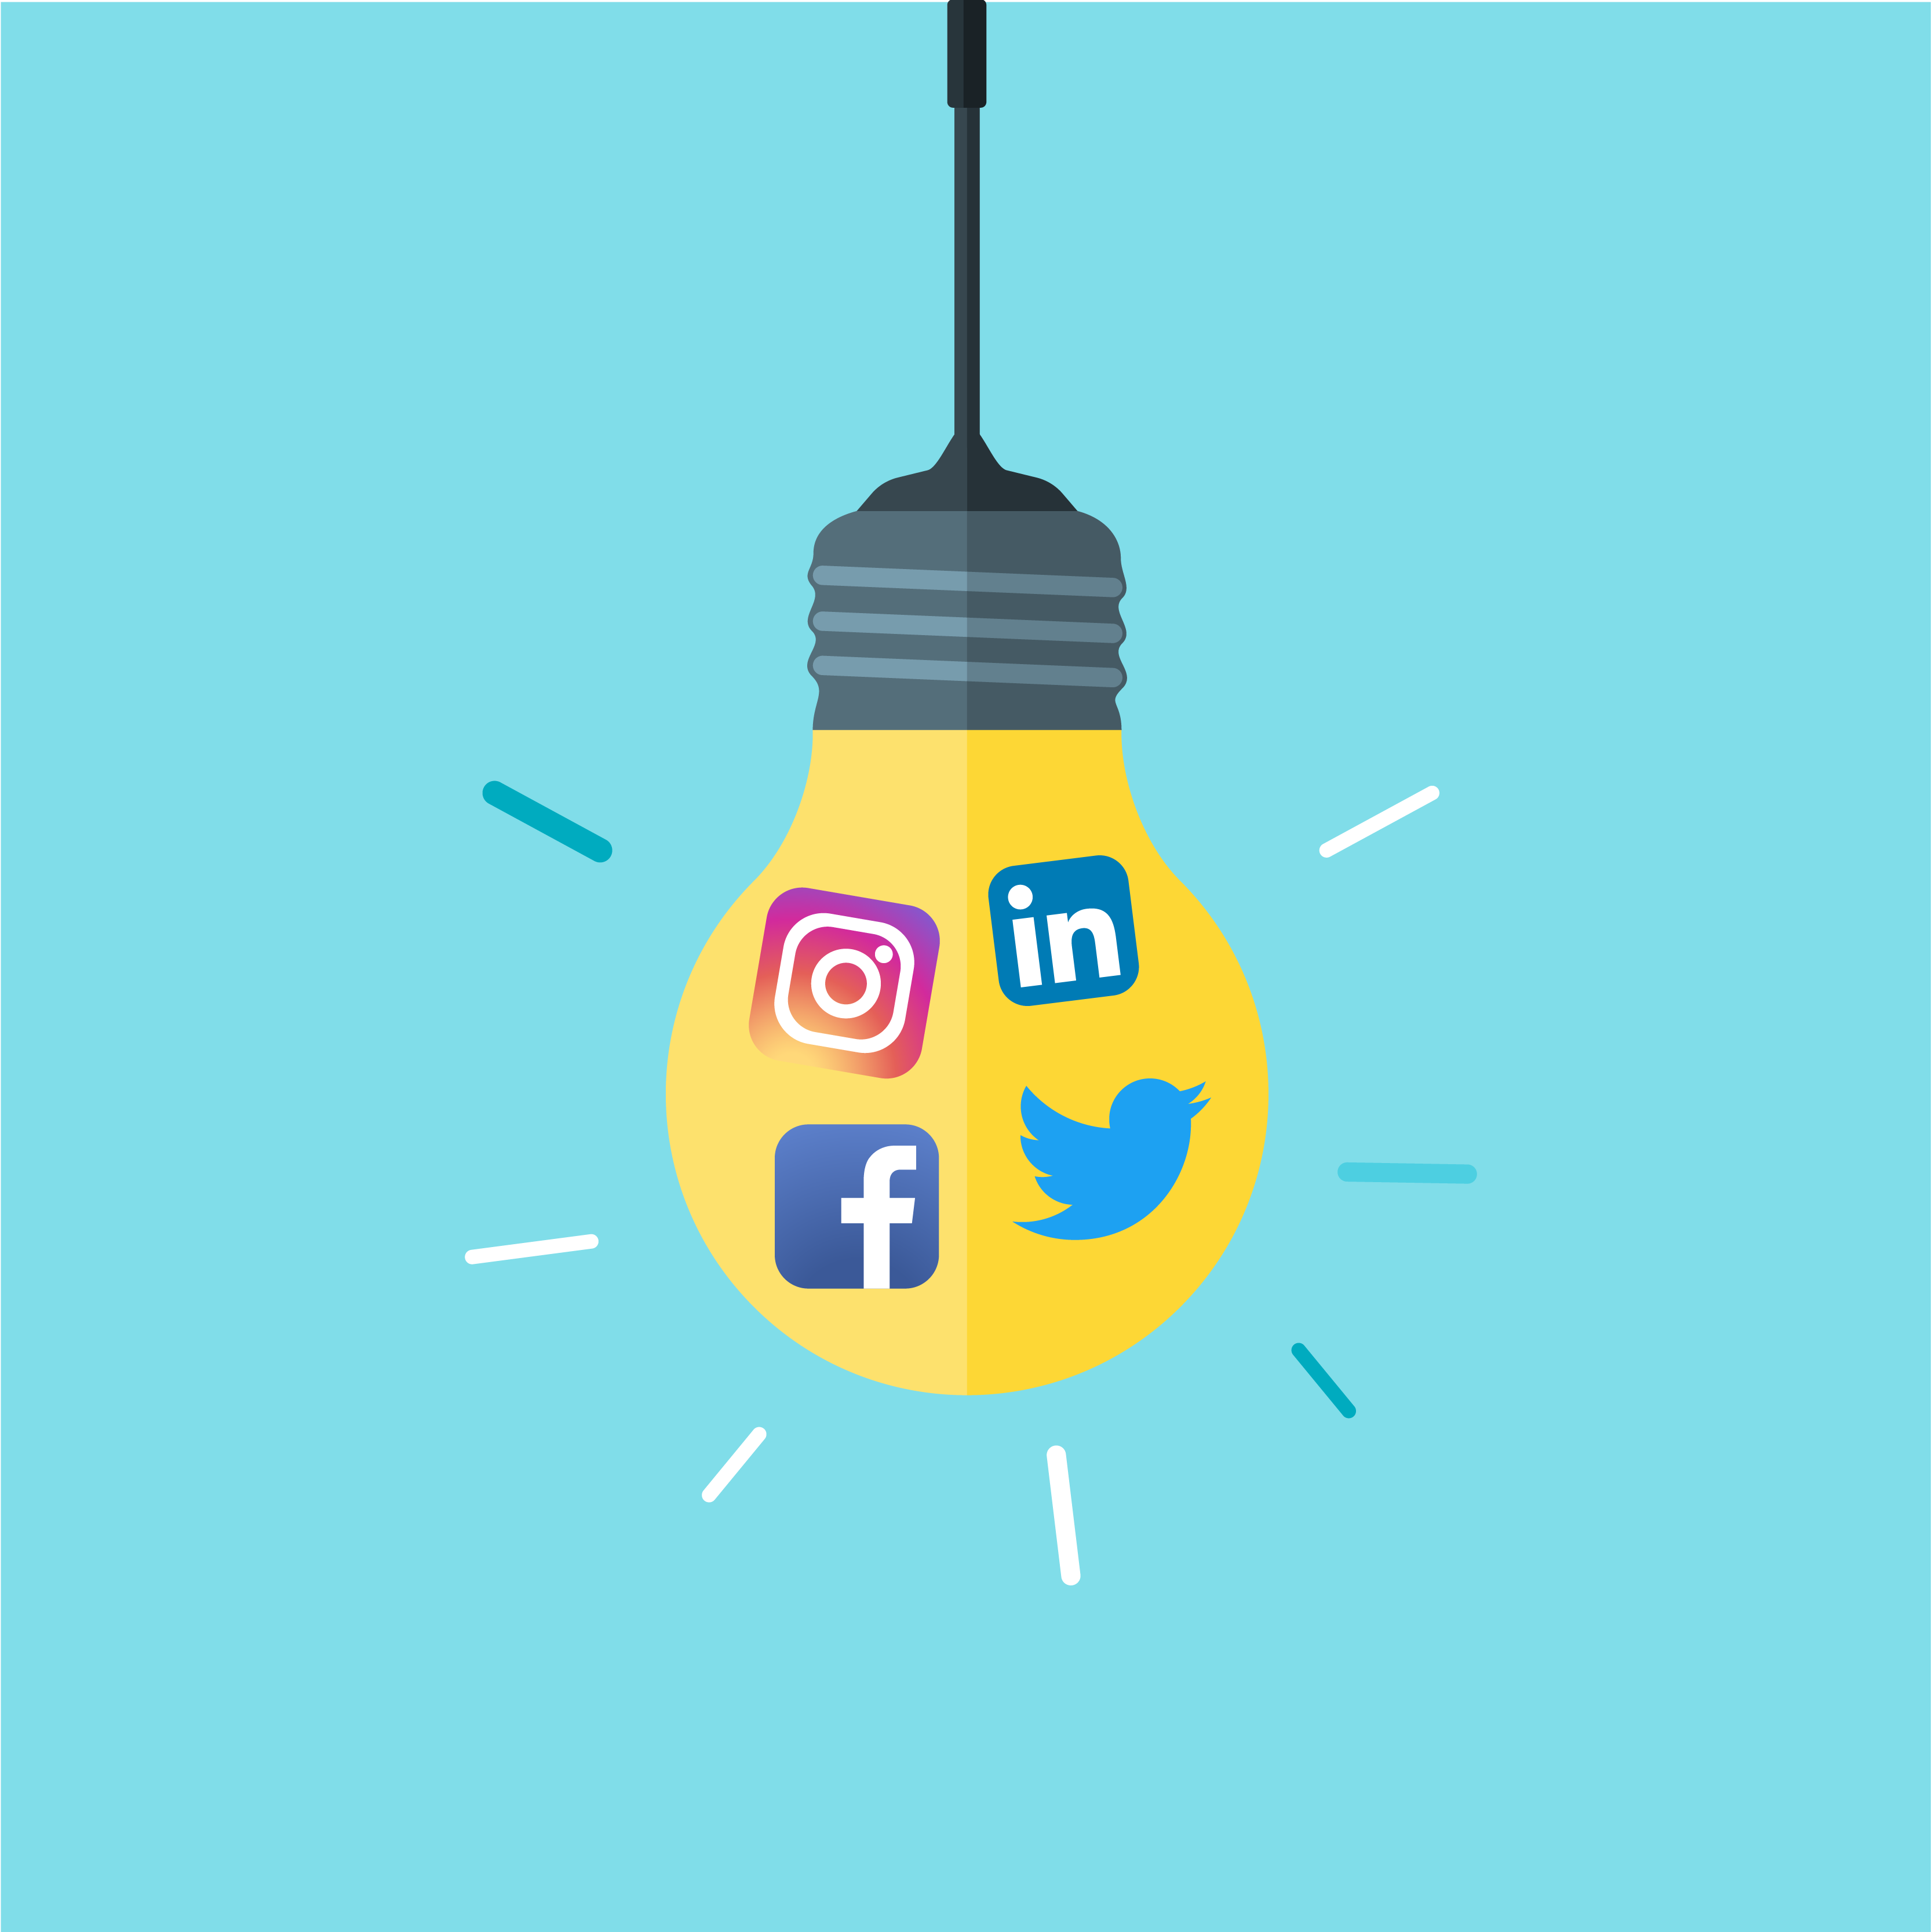 Social Media Advice for a Successful Startup Business Launch